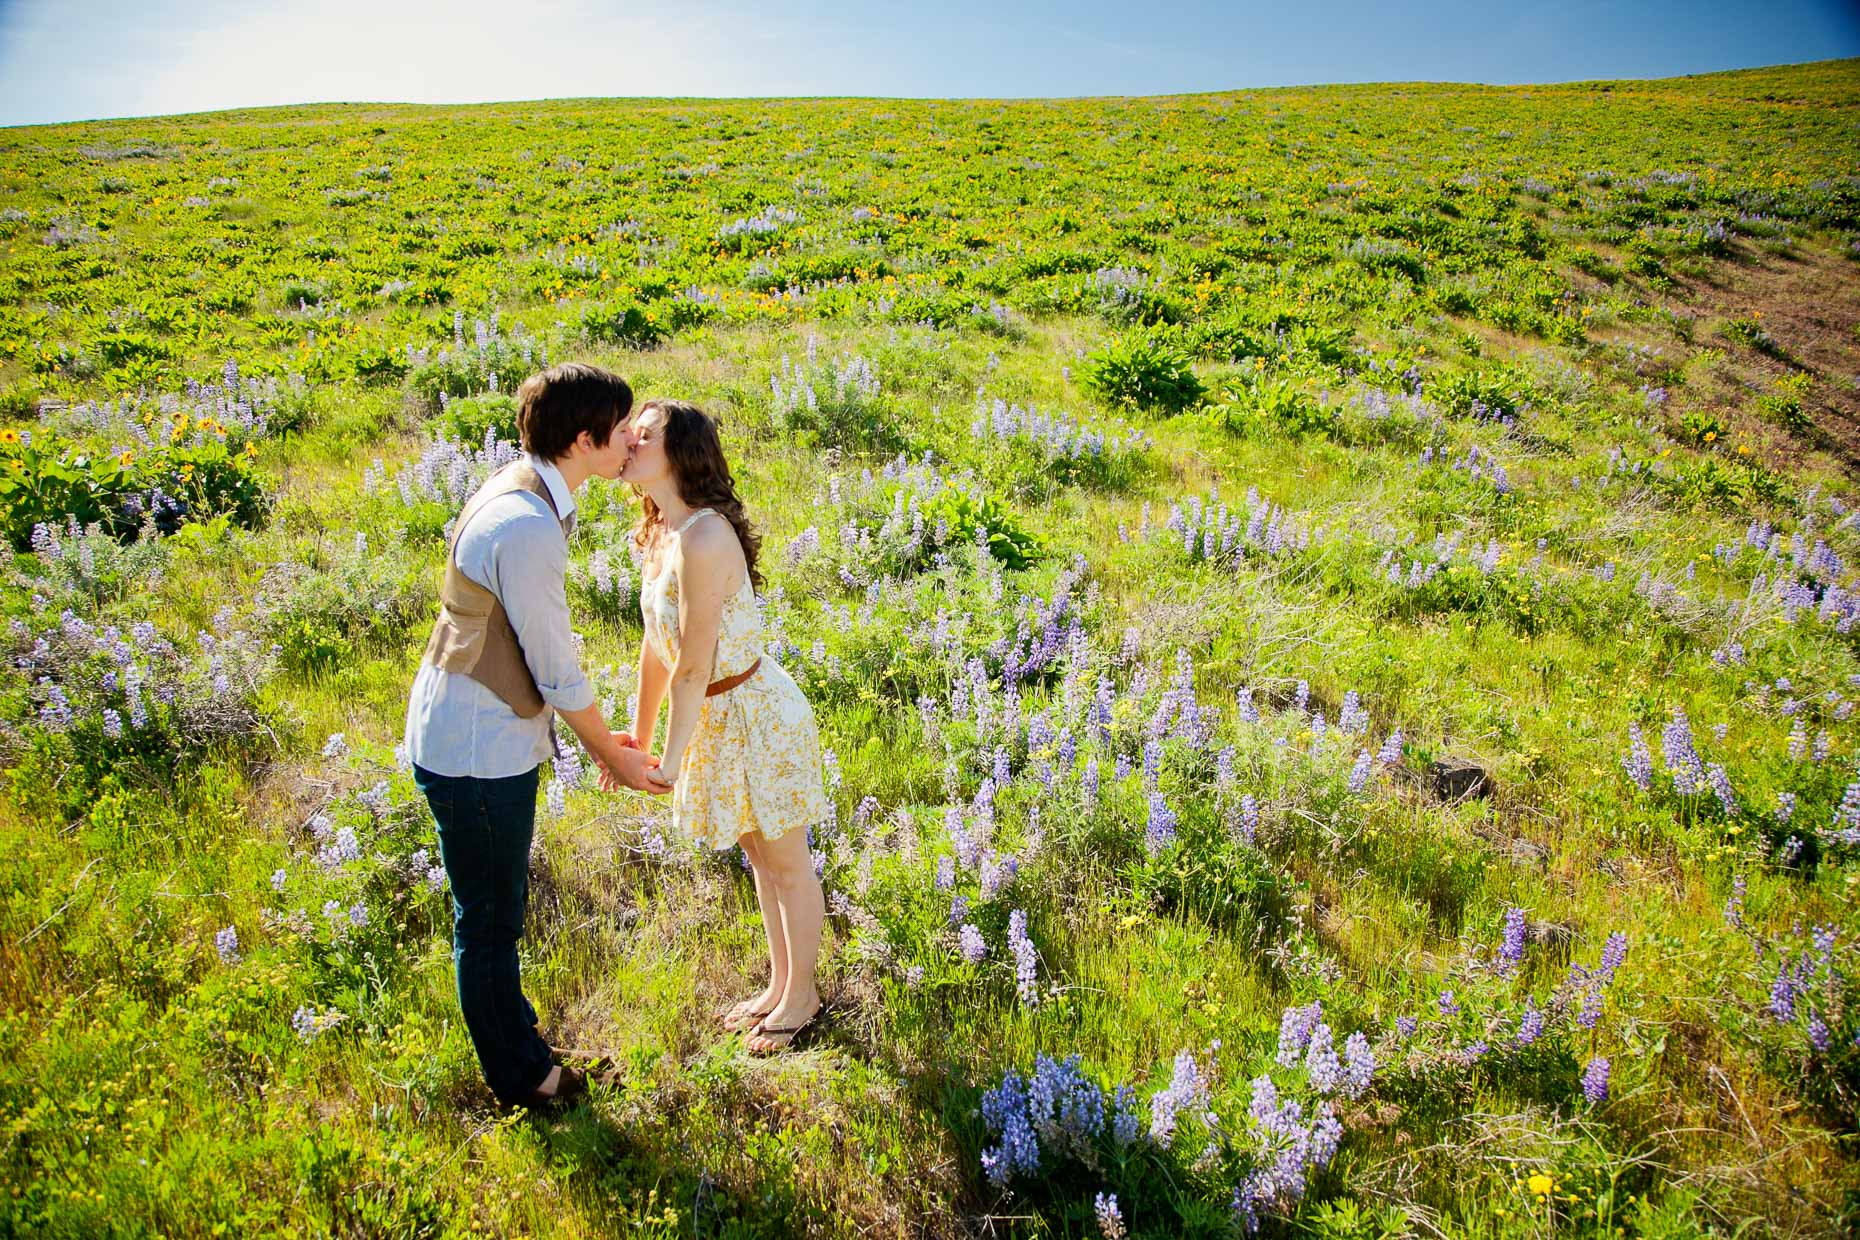 484-blaine-bethany-photography-07